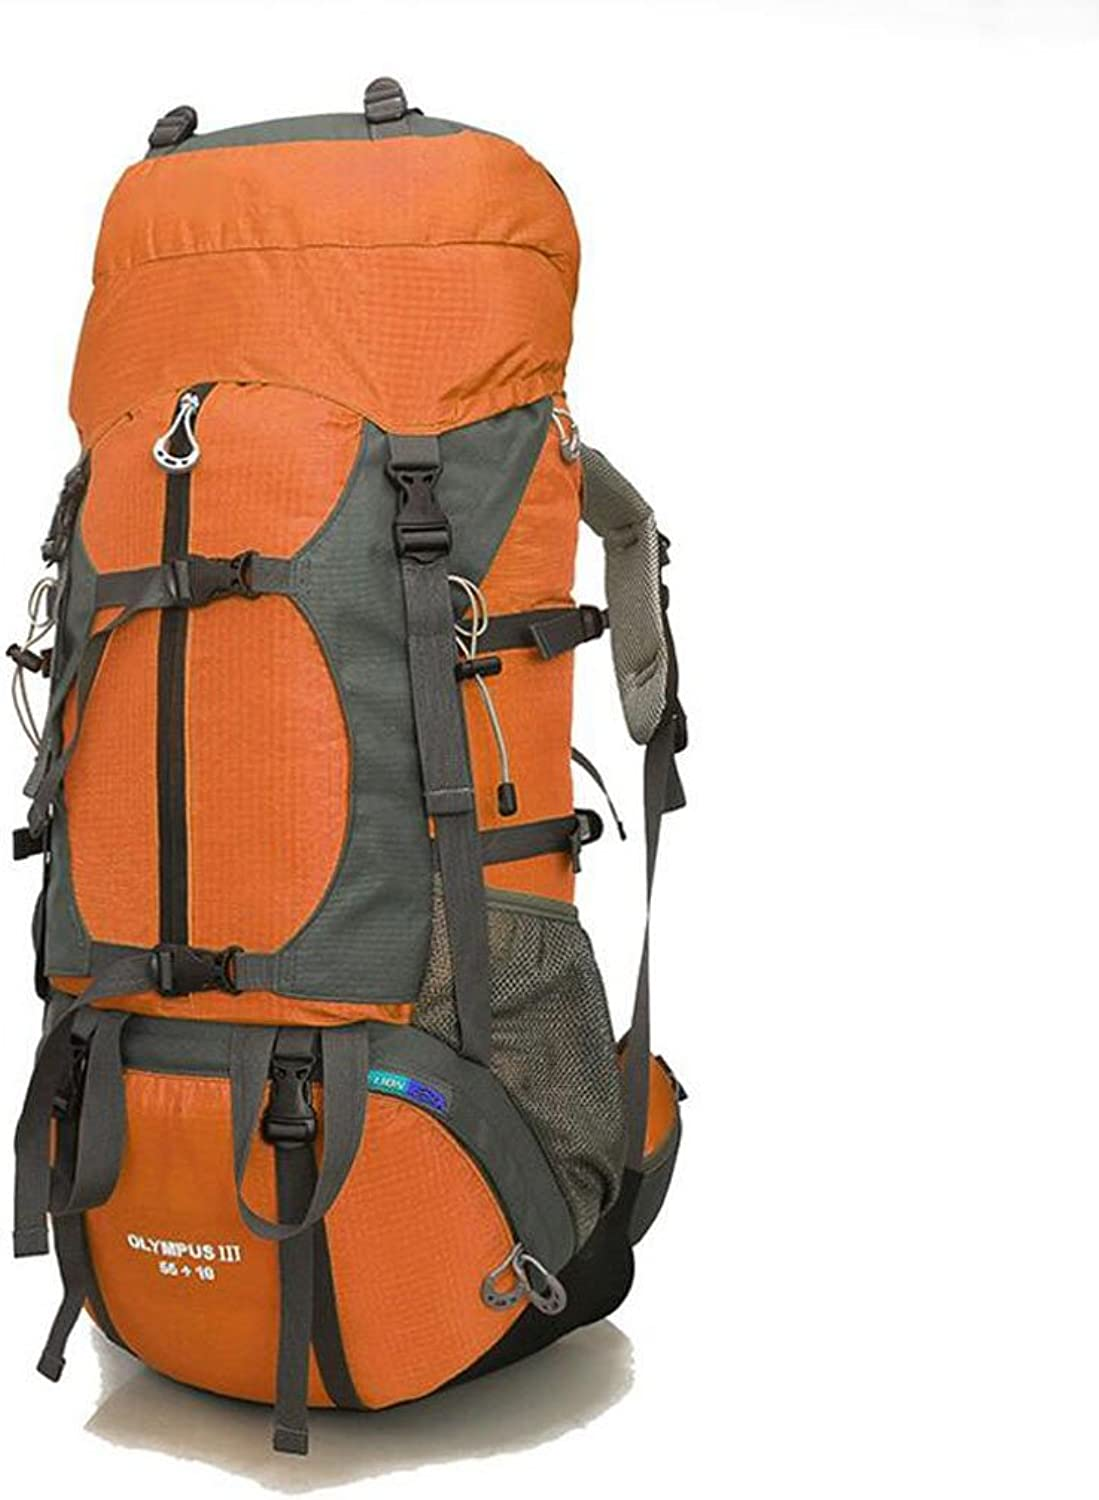 Outdoor Mountaineering Bag 65L Large Capacity Backpack Light can be Folded Travel Hiking Backpack Camping Travel Bag  Yellow (color   orange)